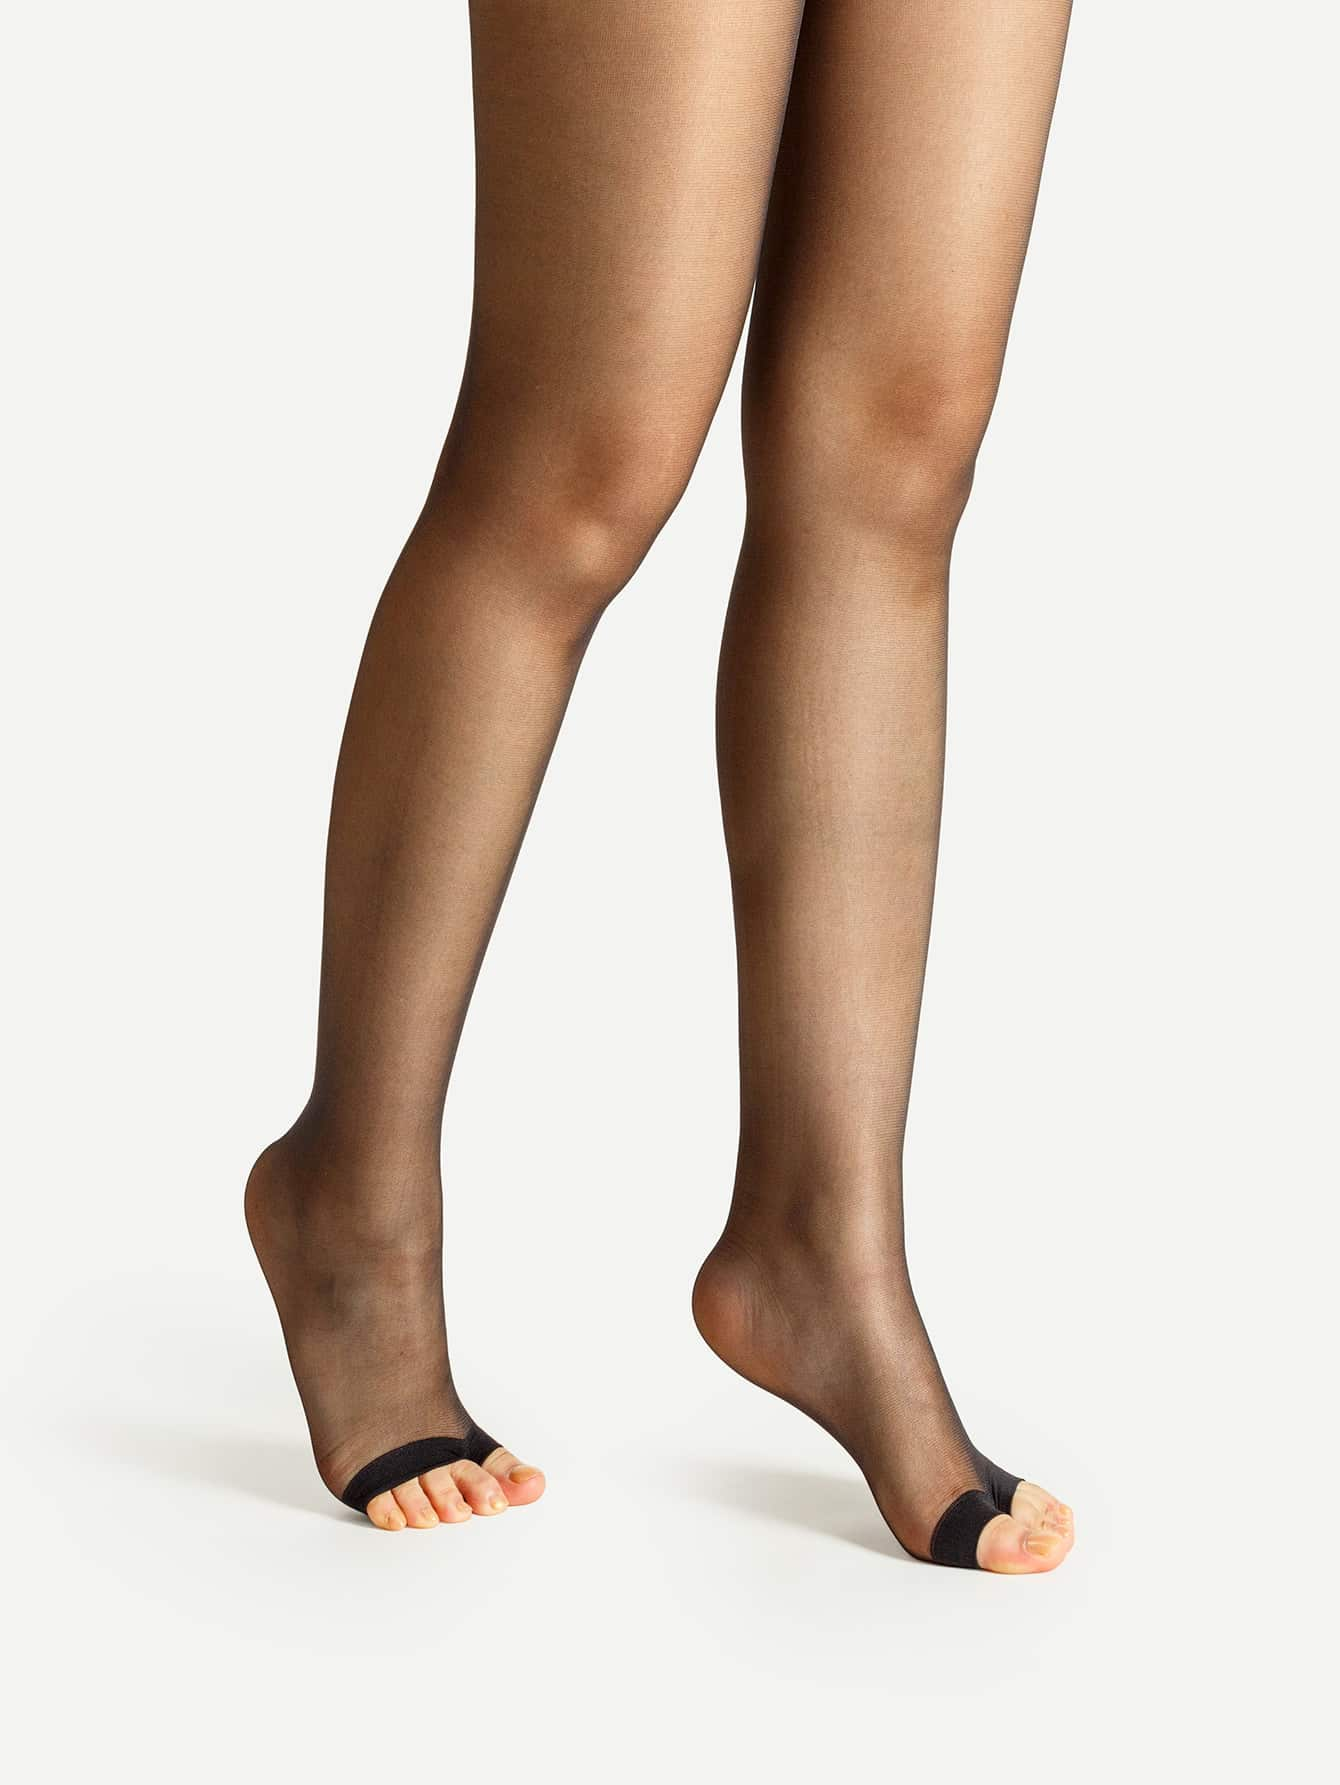 """""""You need to find tights so it looks like you're doing it deliberately, not like you forgot you were wearing open-toe shoes. It's about purpose and deliberation."""" And size does matter."""